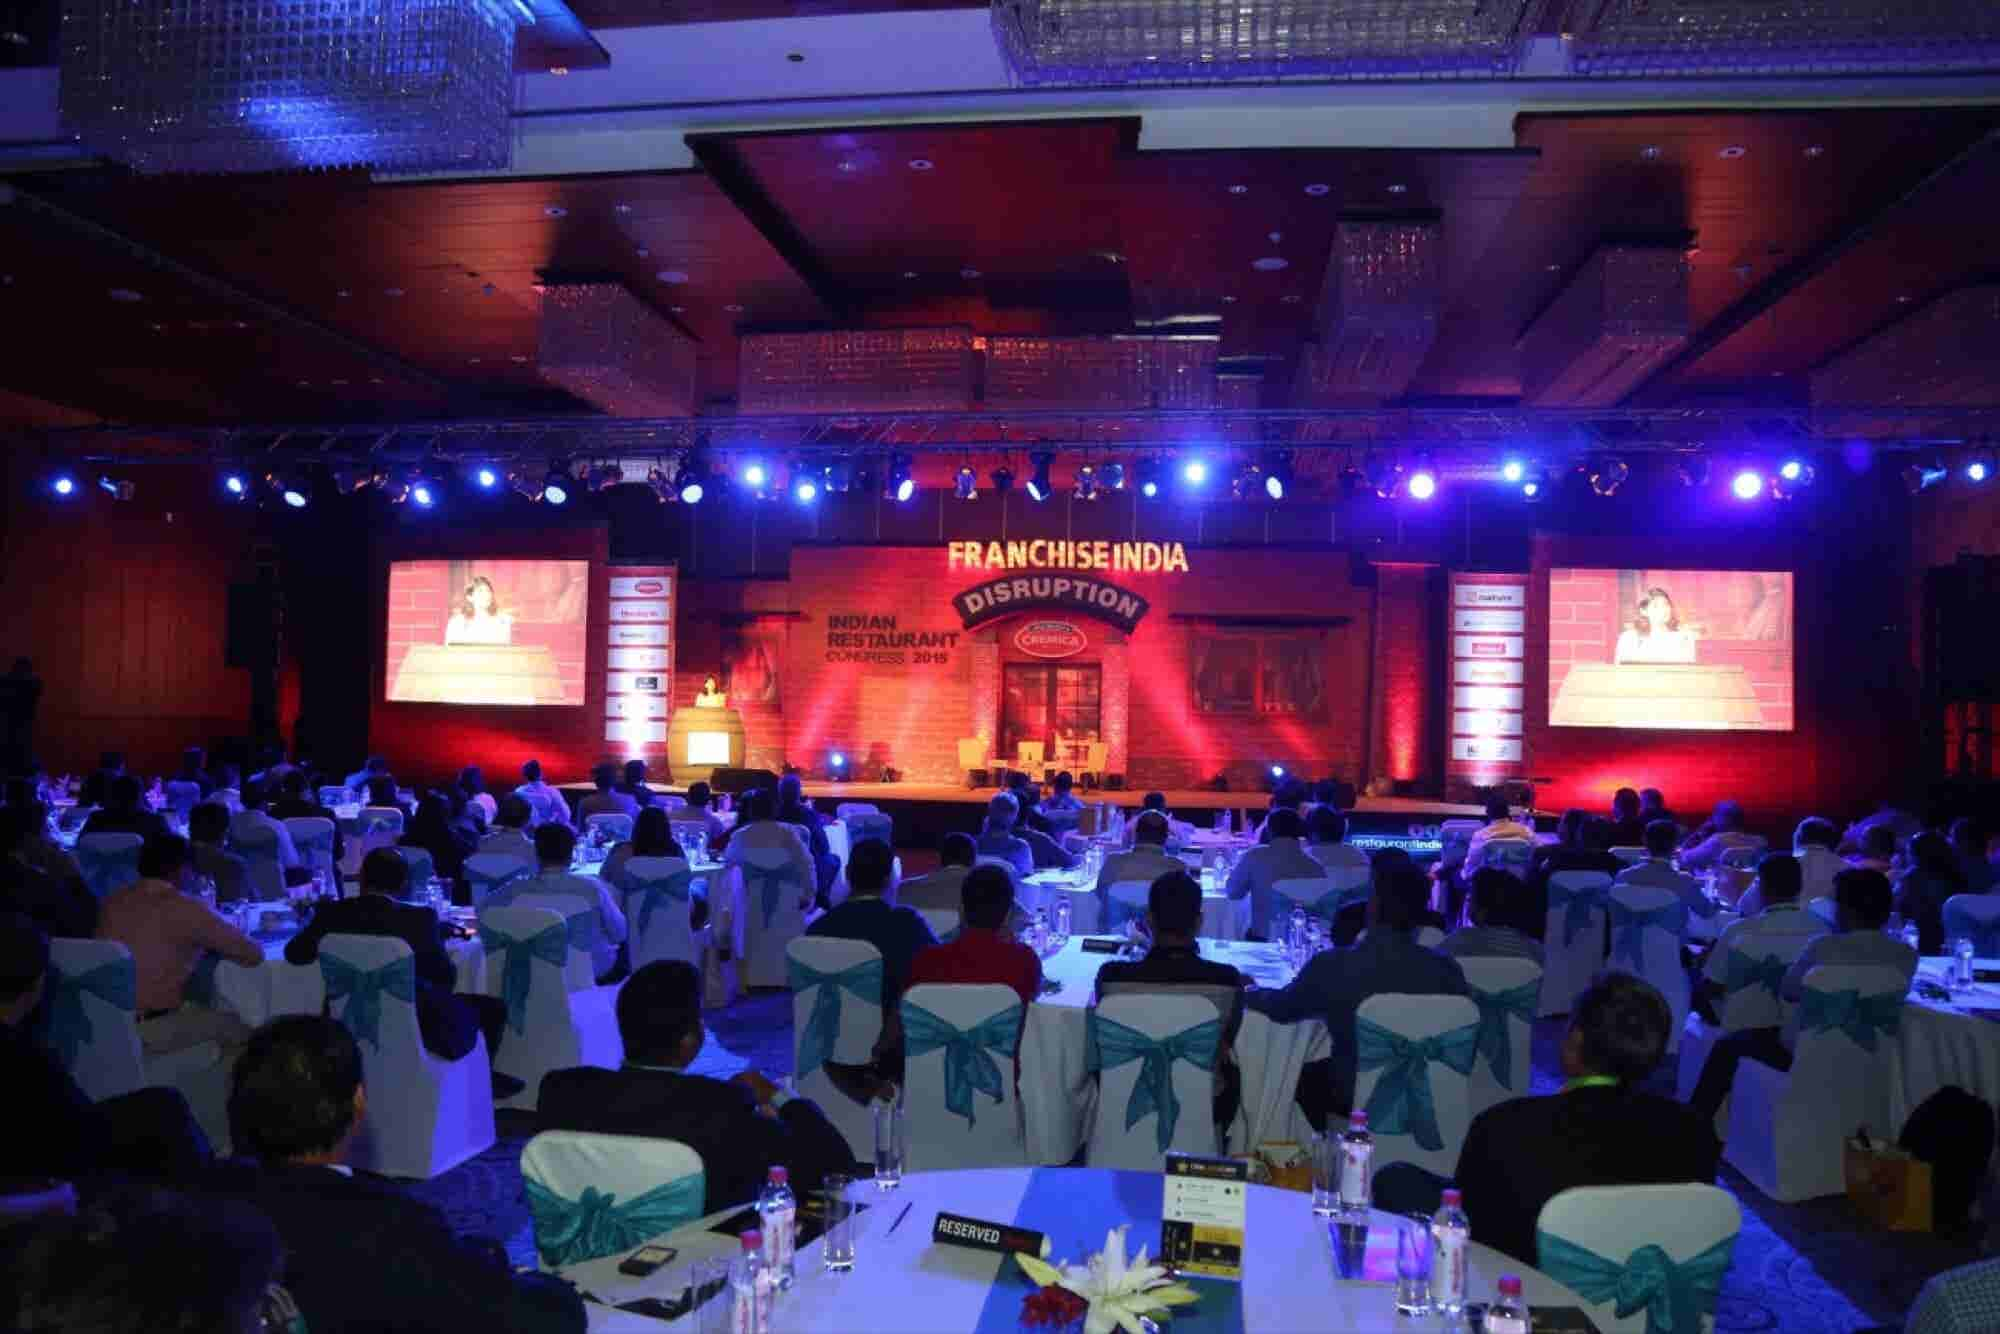 Stage Set in Delhi for India's Biggest Restaurant Show